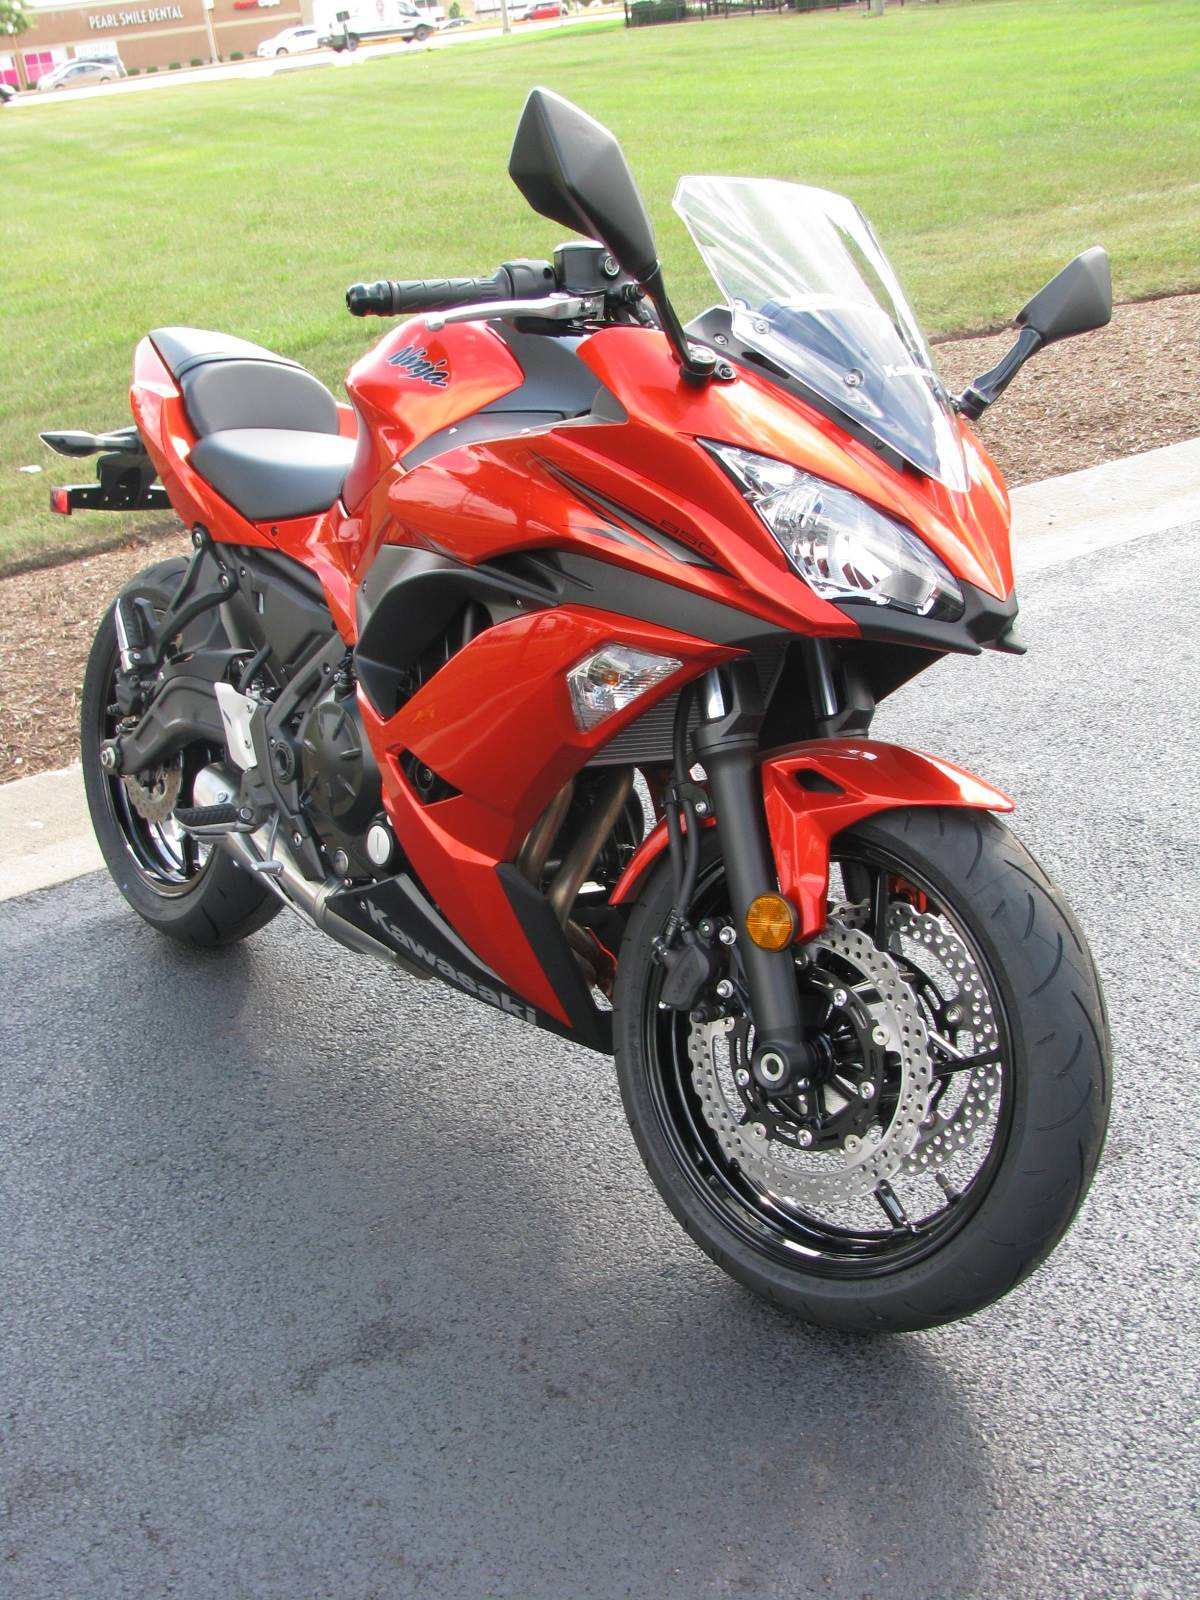 2017 Kawasaki Ninja 650 in Carol Stream, Illinois